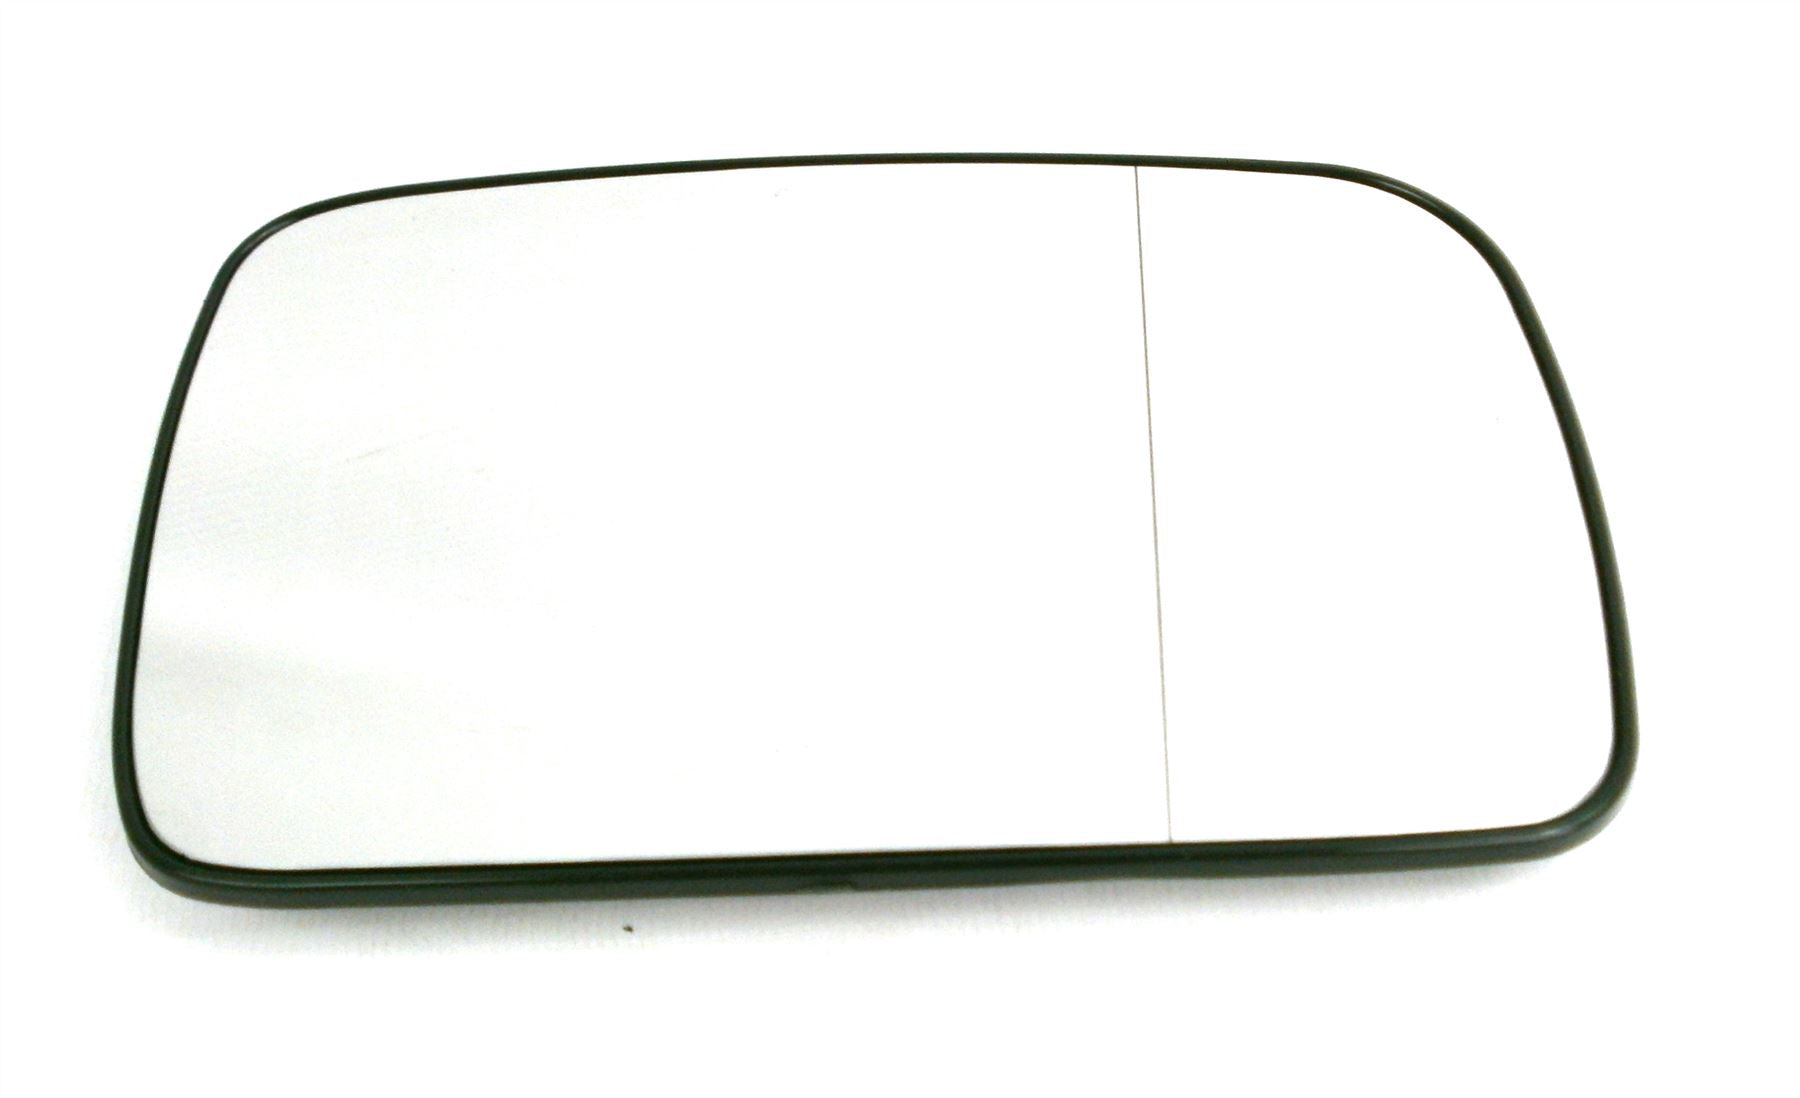 Volkswagen Polo Mk.3 1995-2001 Heated Aspherical Mirror Glass Drivers Side O/S